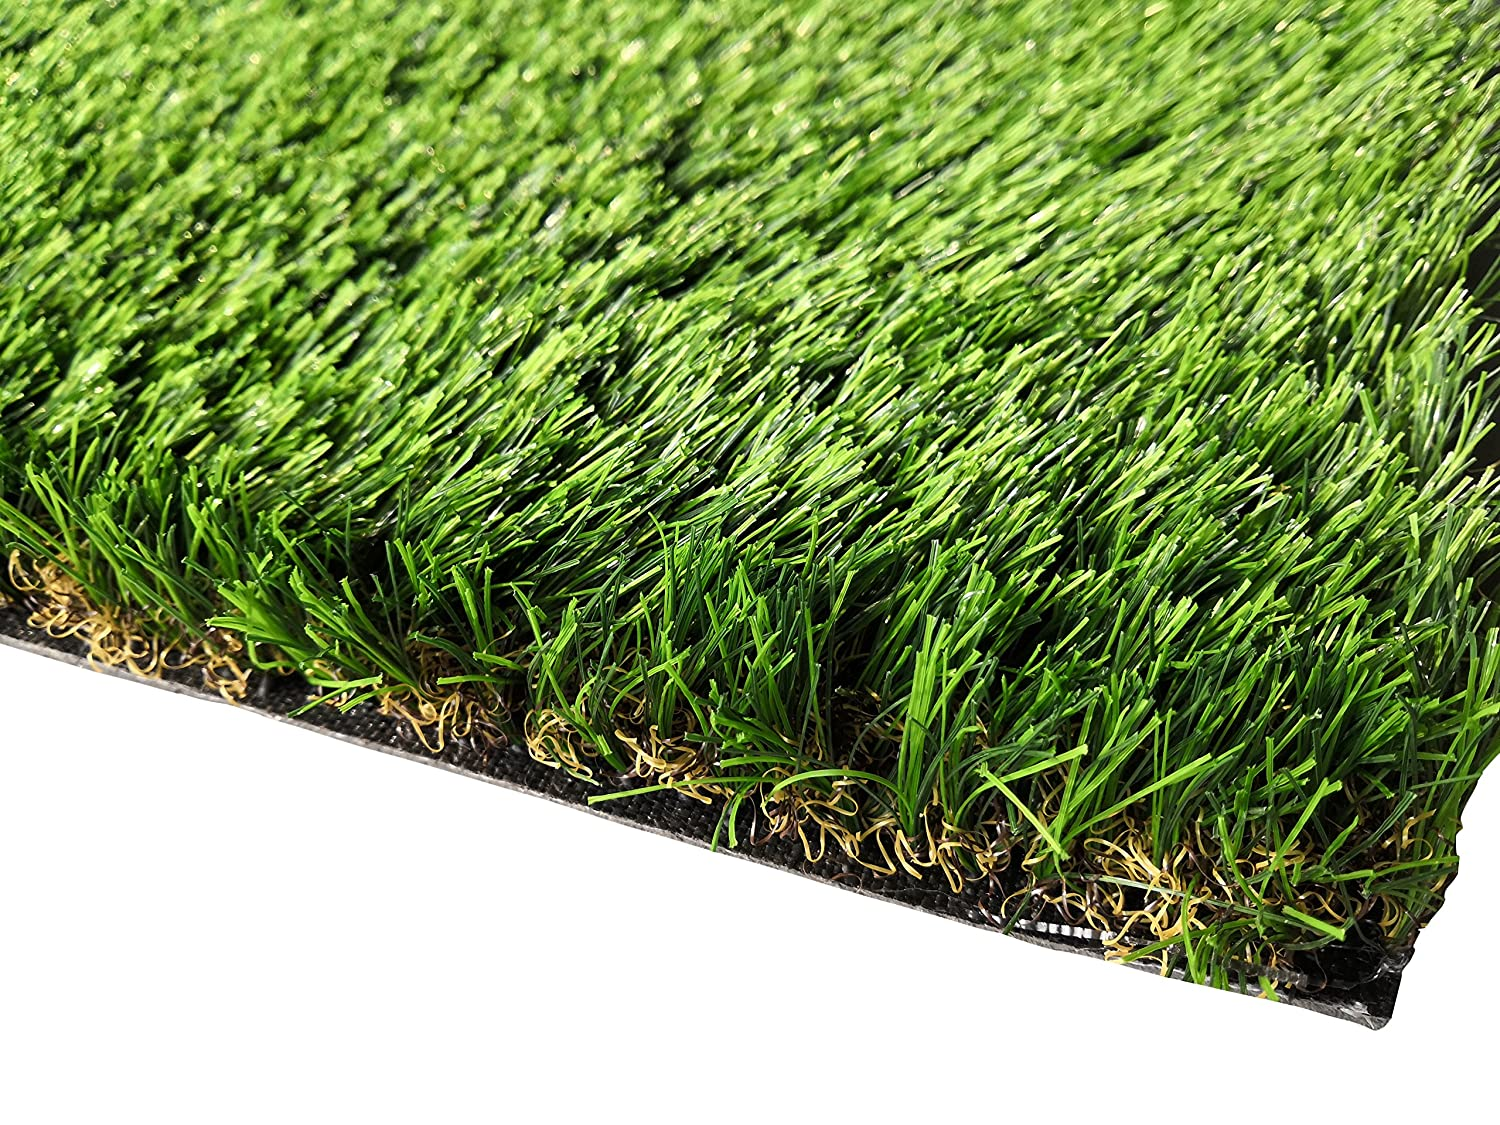 4ft x 2ft PZG Commerical Artificial Grass Patch w Drainage Holes & Rubber Backing   Extra-Heavy & Durable Turf   Lead-Free Fake Grass for Dogs or Outdoor Decor   Total Wt. 94 oz & Face Wt. 62 oz   4' x 2'